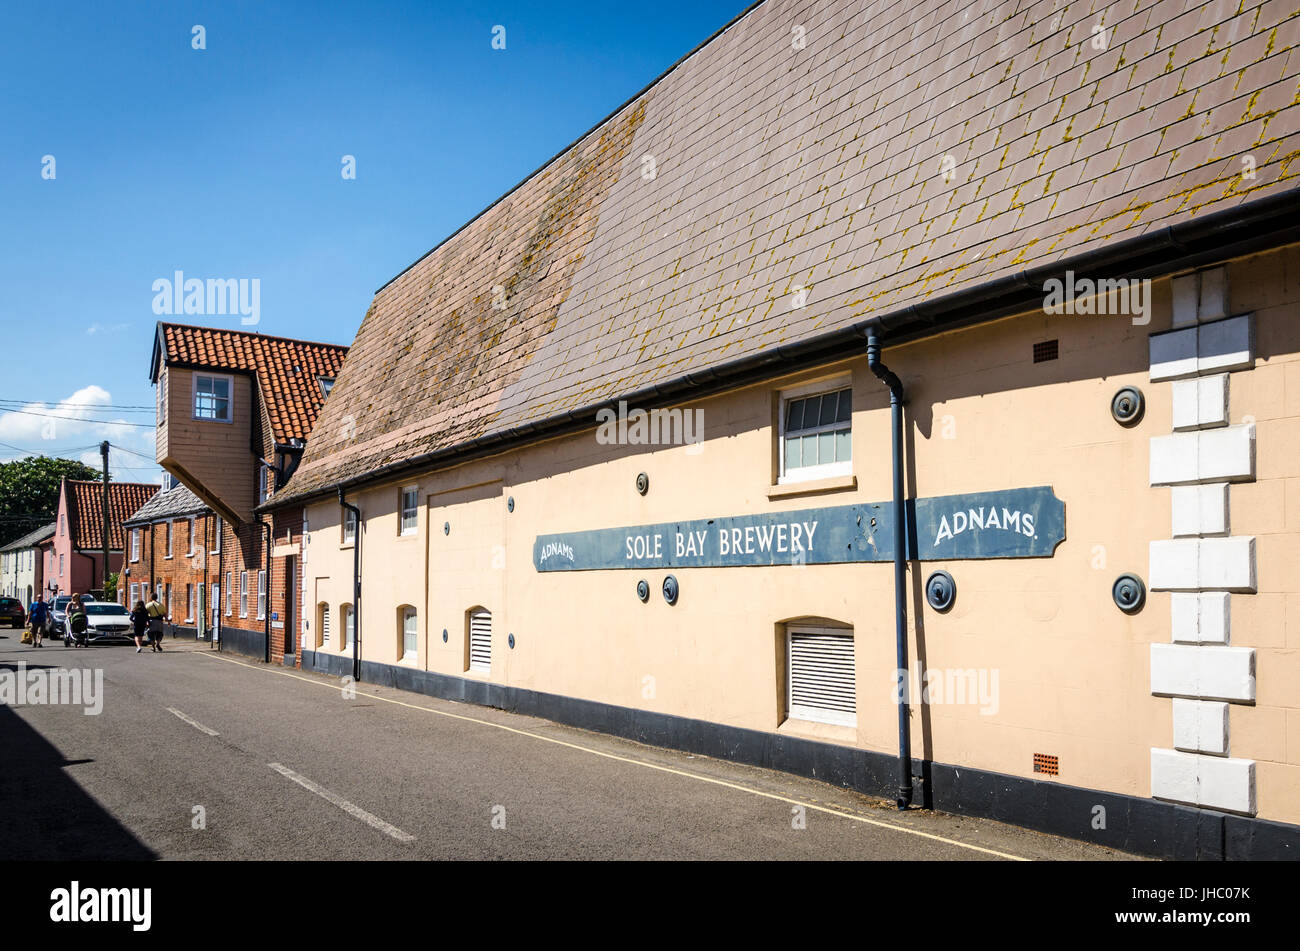 Adnams Sole Bay Brewery, Southwold, Suffolk, England - Stock Image